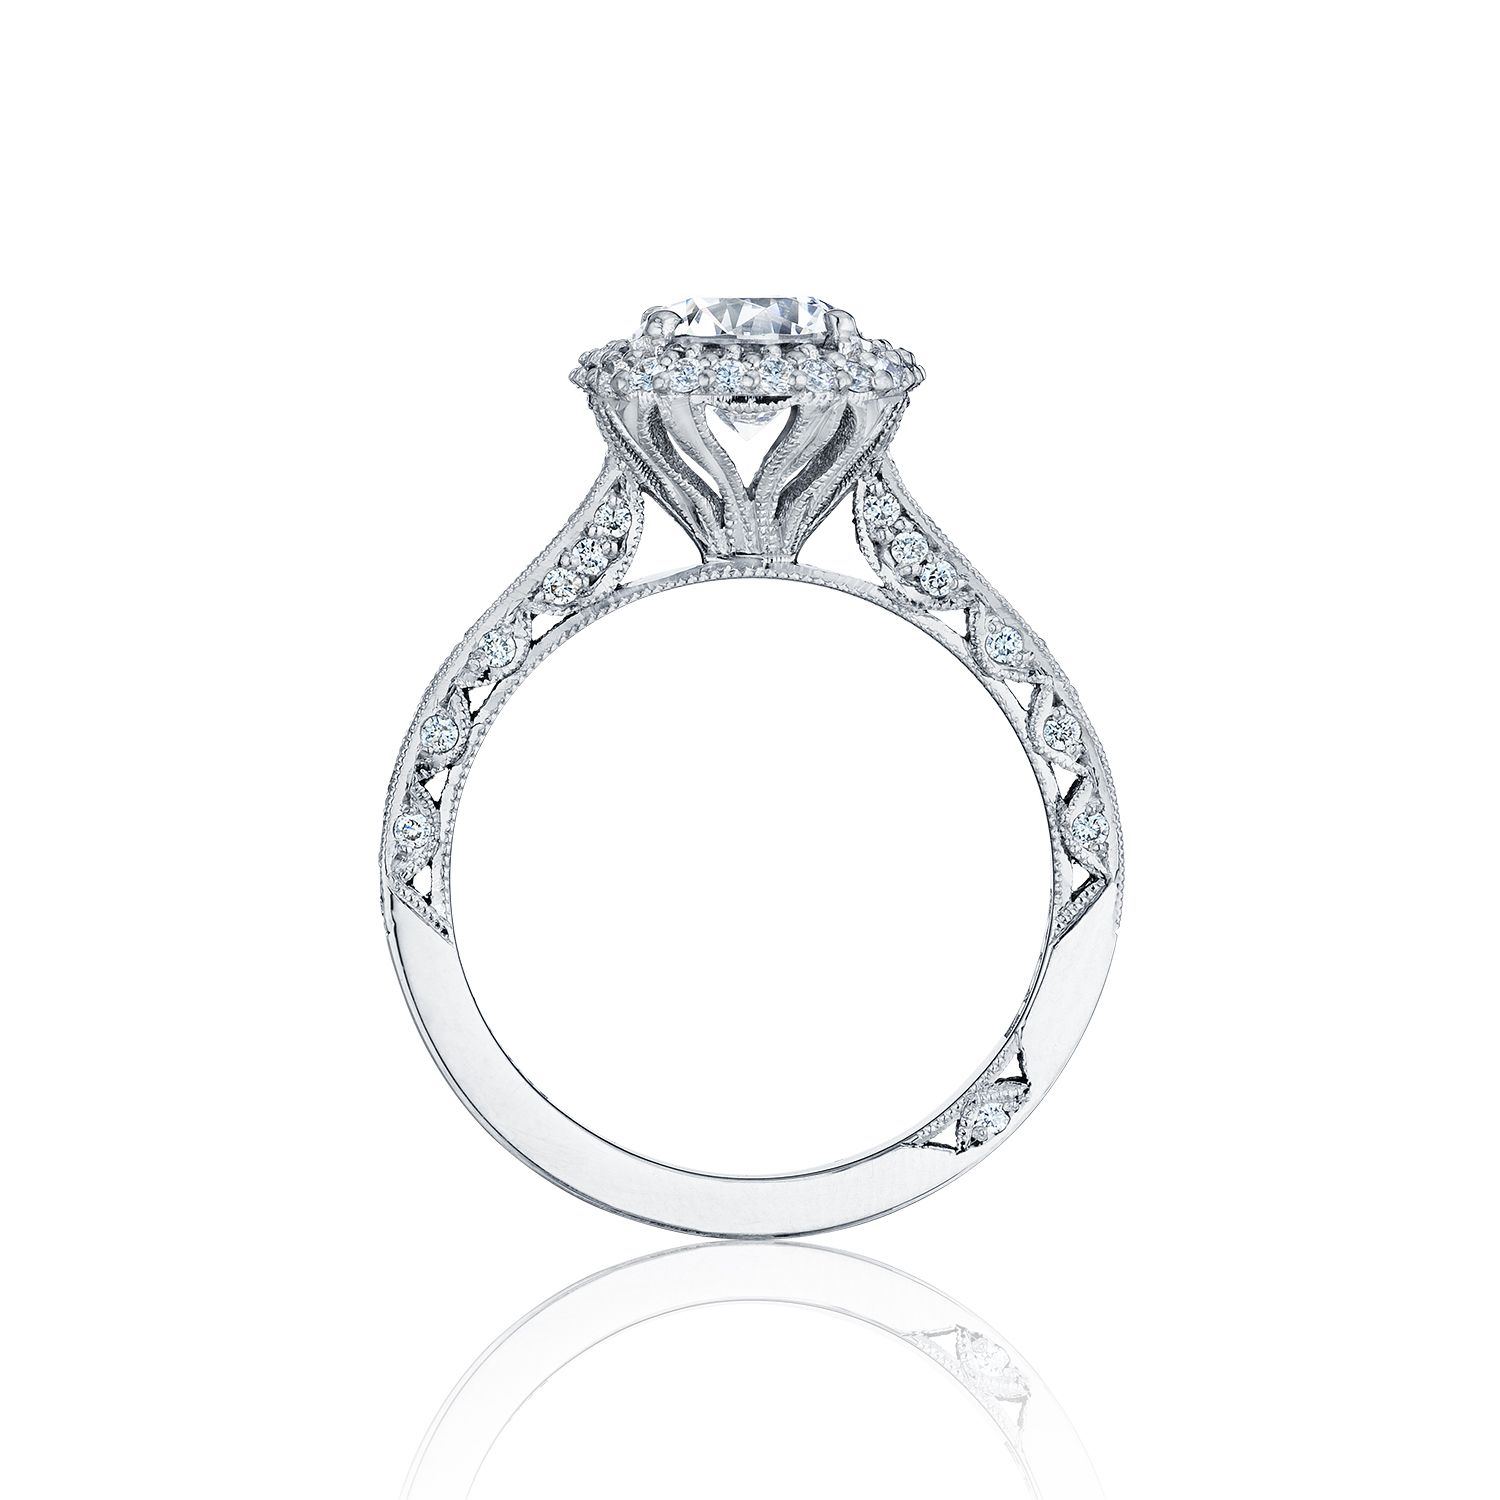 ring in band diamond tw ritani open settings setting engagement white gold jewellery